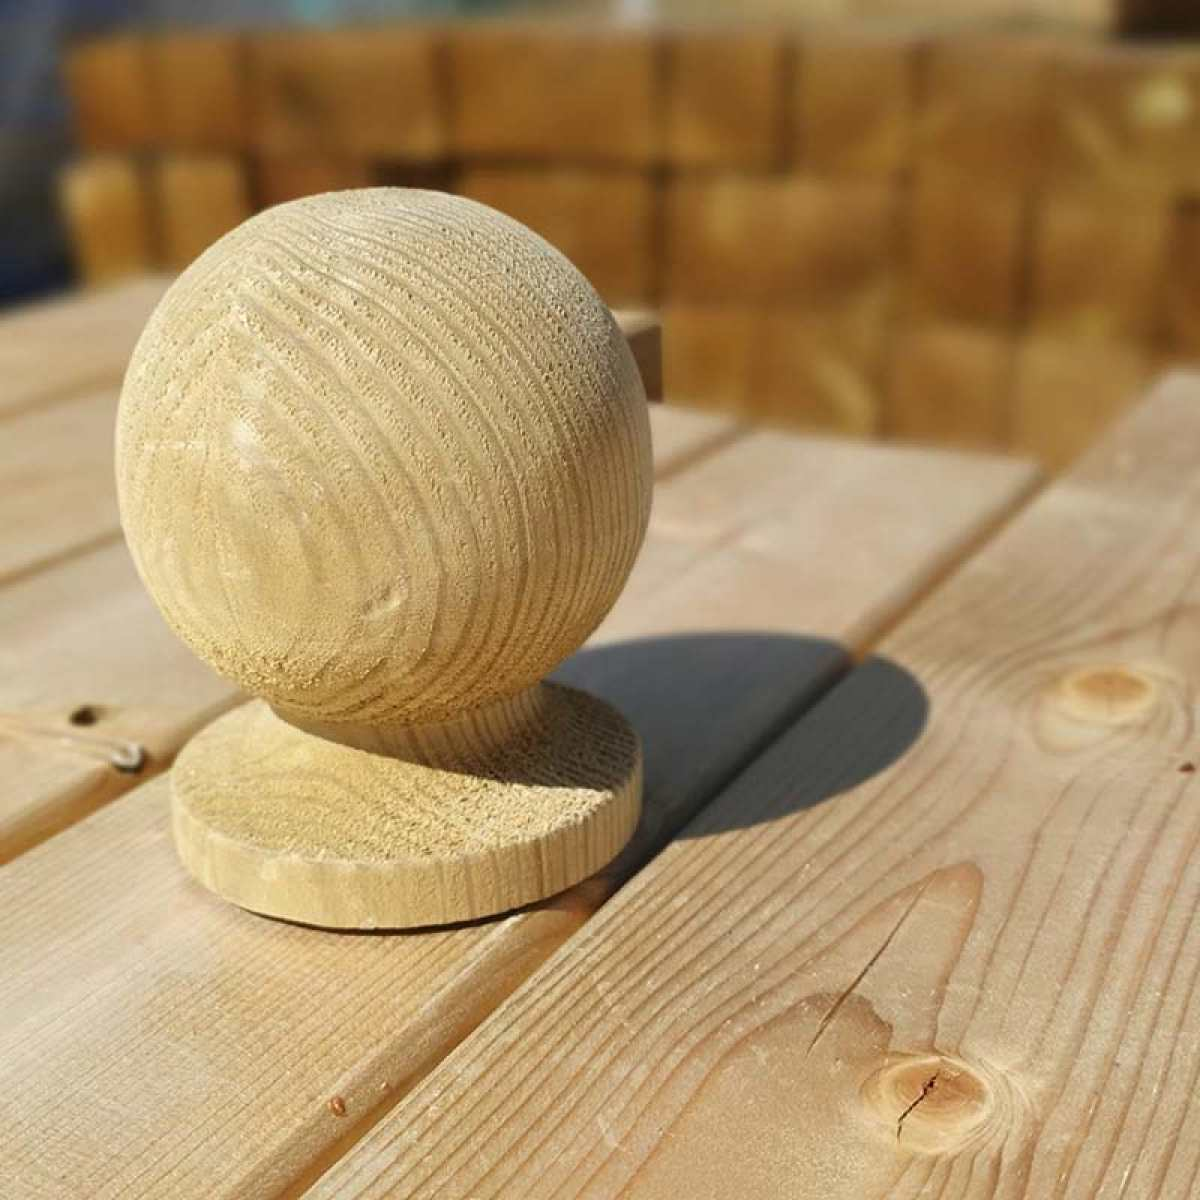 decking ball2 post cap websterstimber scaled Image by Websters Timber